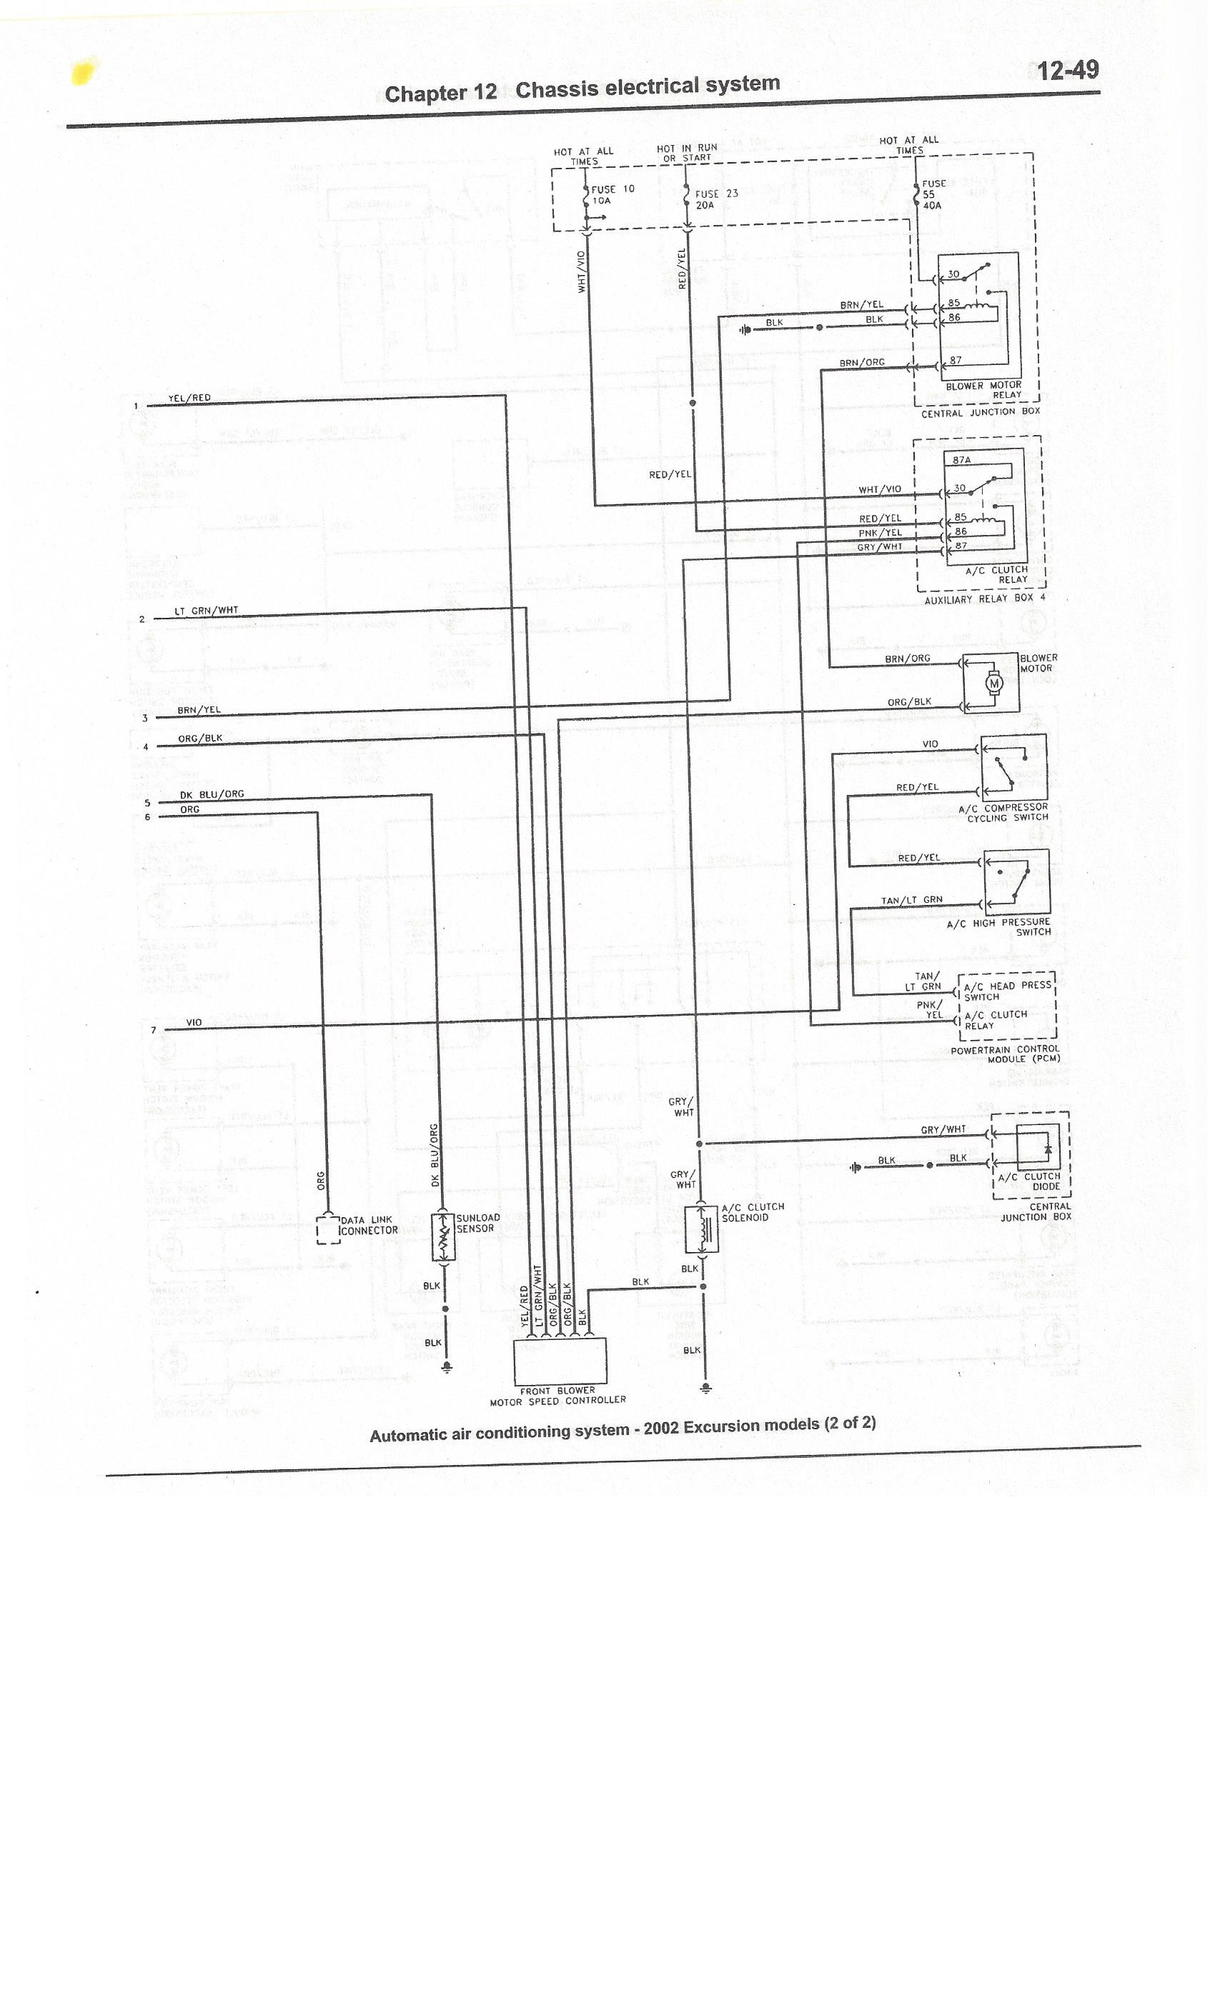 Ha41 Diagram Ford Excursion